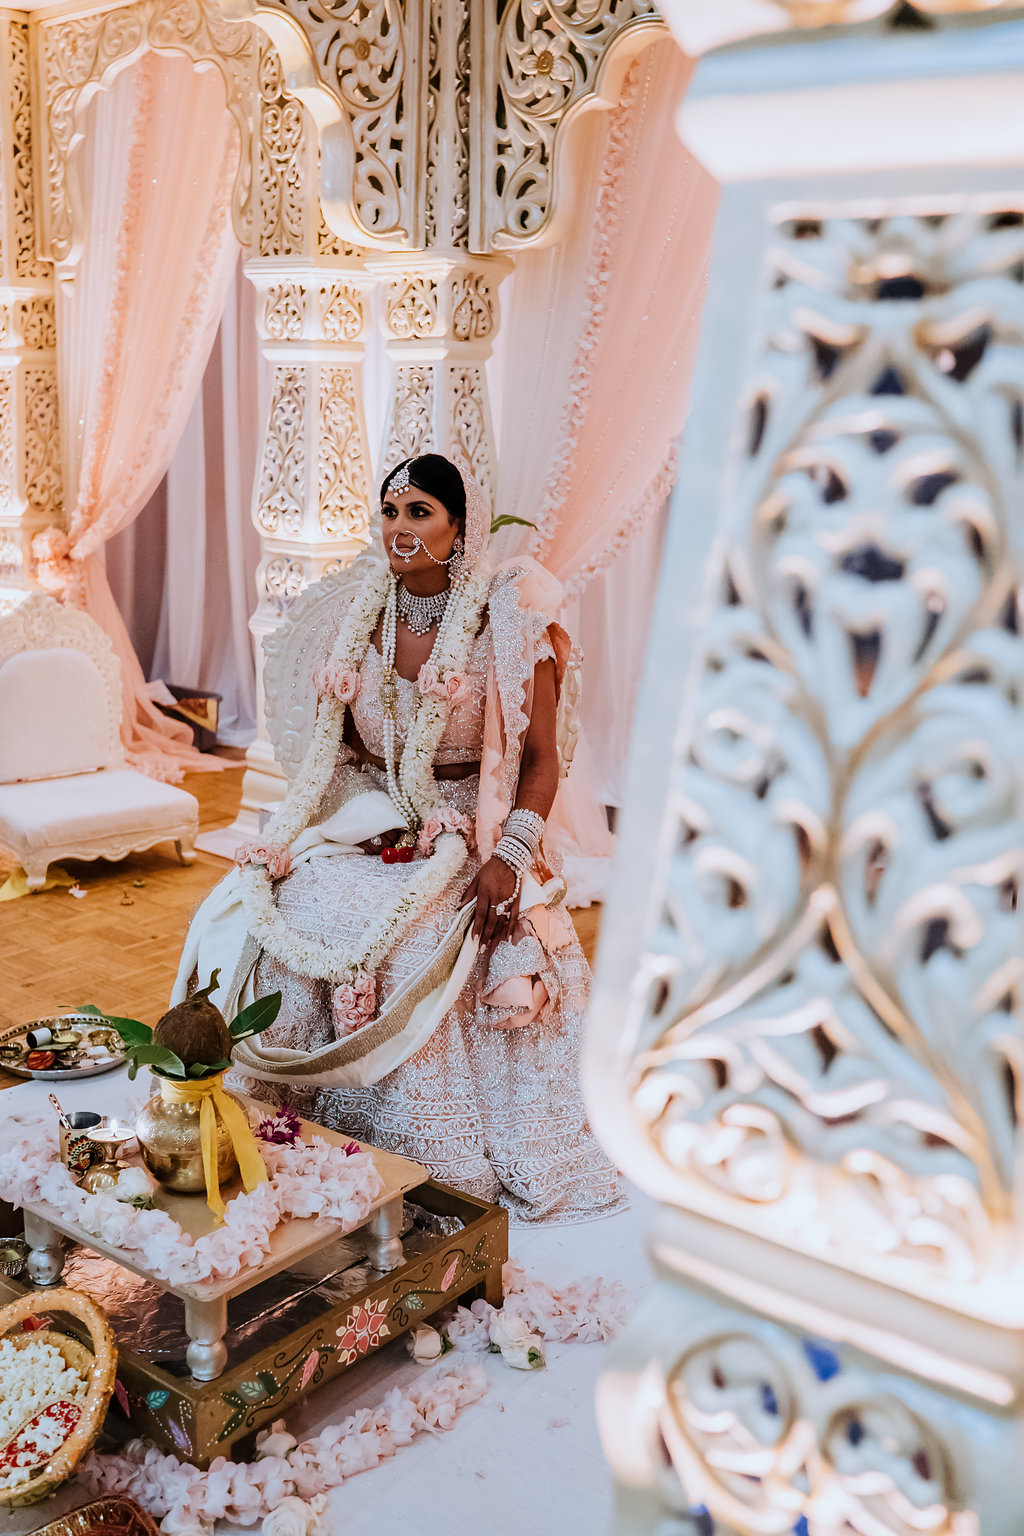 Regal and Romantic Traditional Hindu Indian Wedding Ceremony Bride Portrait with Gold Uplighting and Blush Pink Draping Behind the Mandap   Tampa Bay Wedding Venue Safety Harbor Resort and Spa   Planner Glitz Events   Photographer Grind and Press Photography